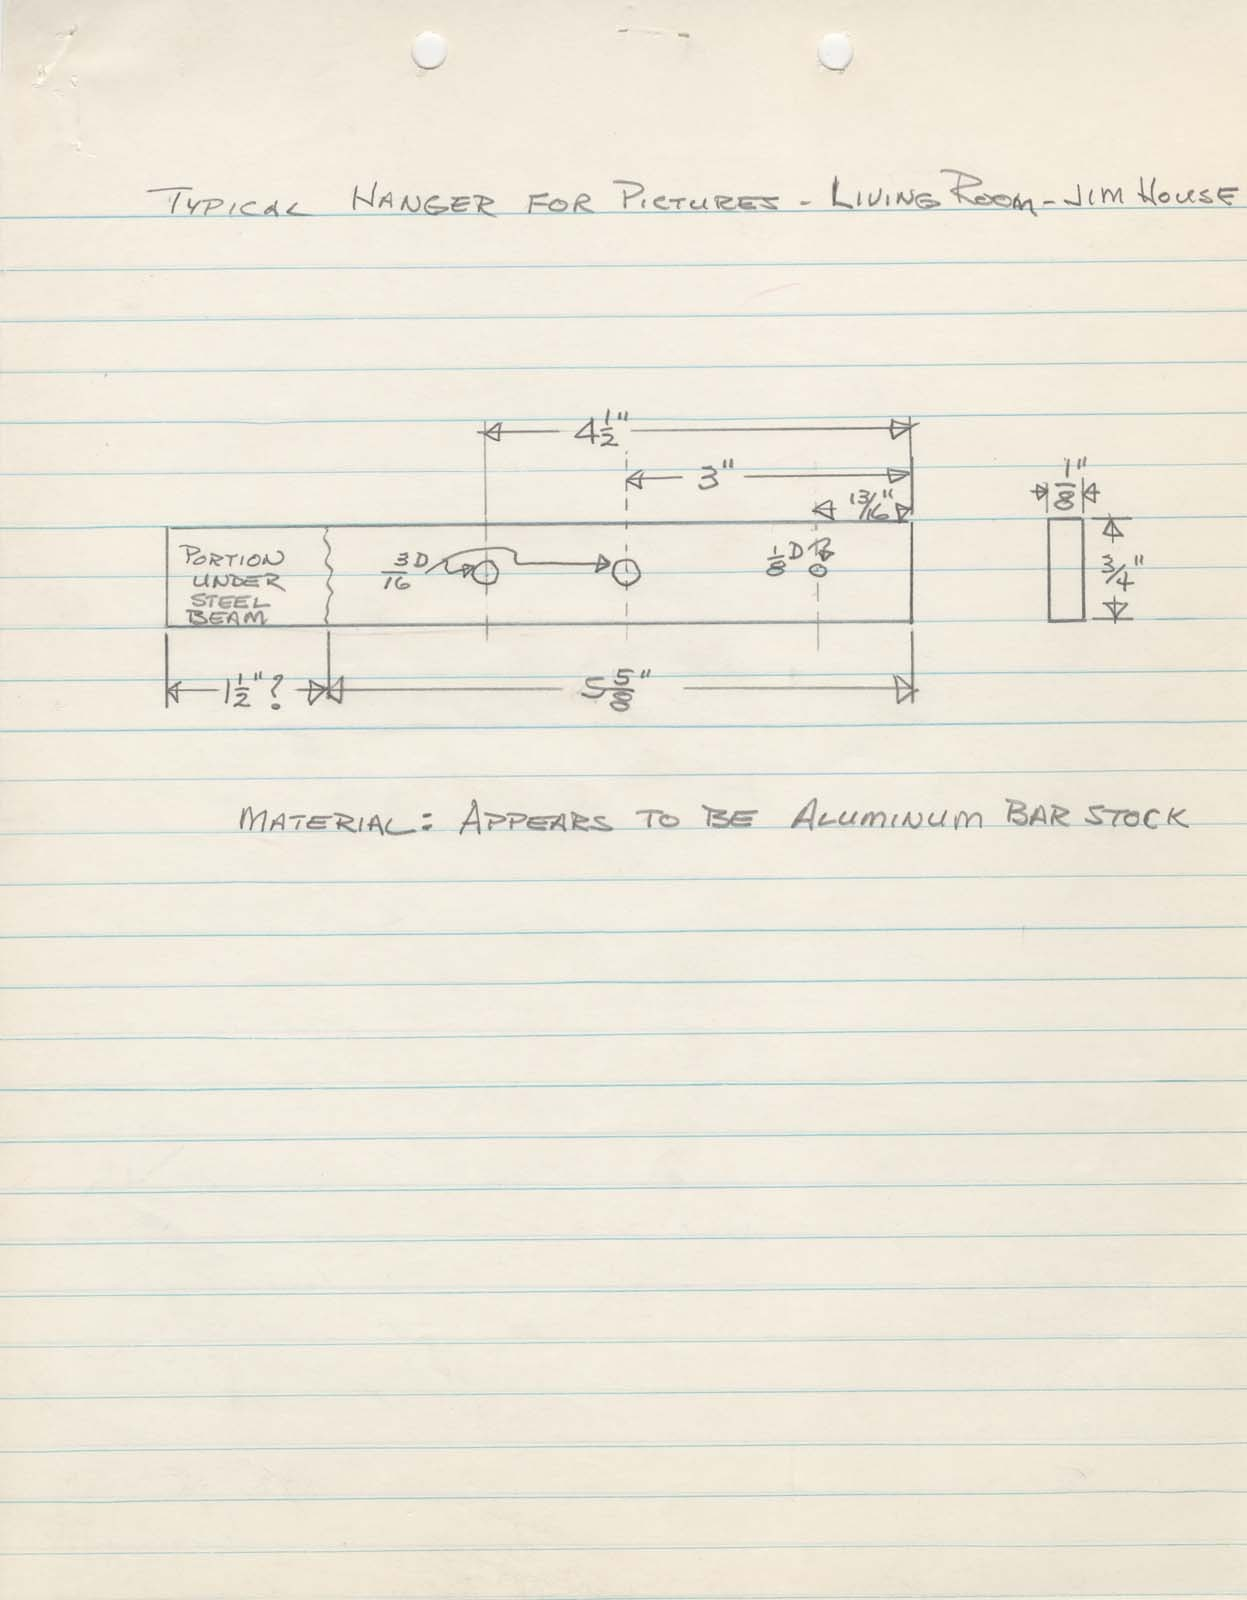 How do you hang pictures on marble walls? This drawing shows the system used at the Miller House. Fitted between the steel beam and the marble wall, the aluminum bar had a wire that passed through it from which the picture was hung. After Monet's Waterlillies (1919) fell , a heavier wire was used to rehang the painting.  Pencil drawing of Typical Hanger for Pictures, March 1958, 2/11, Miller House and Garden Collection, IMA Archives, Indianapolis Museum of Art, Indianapolis, Indiana. (MHG_Ia_B002_f011_042)